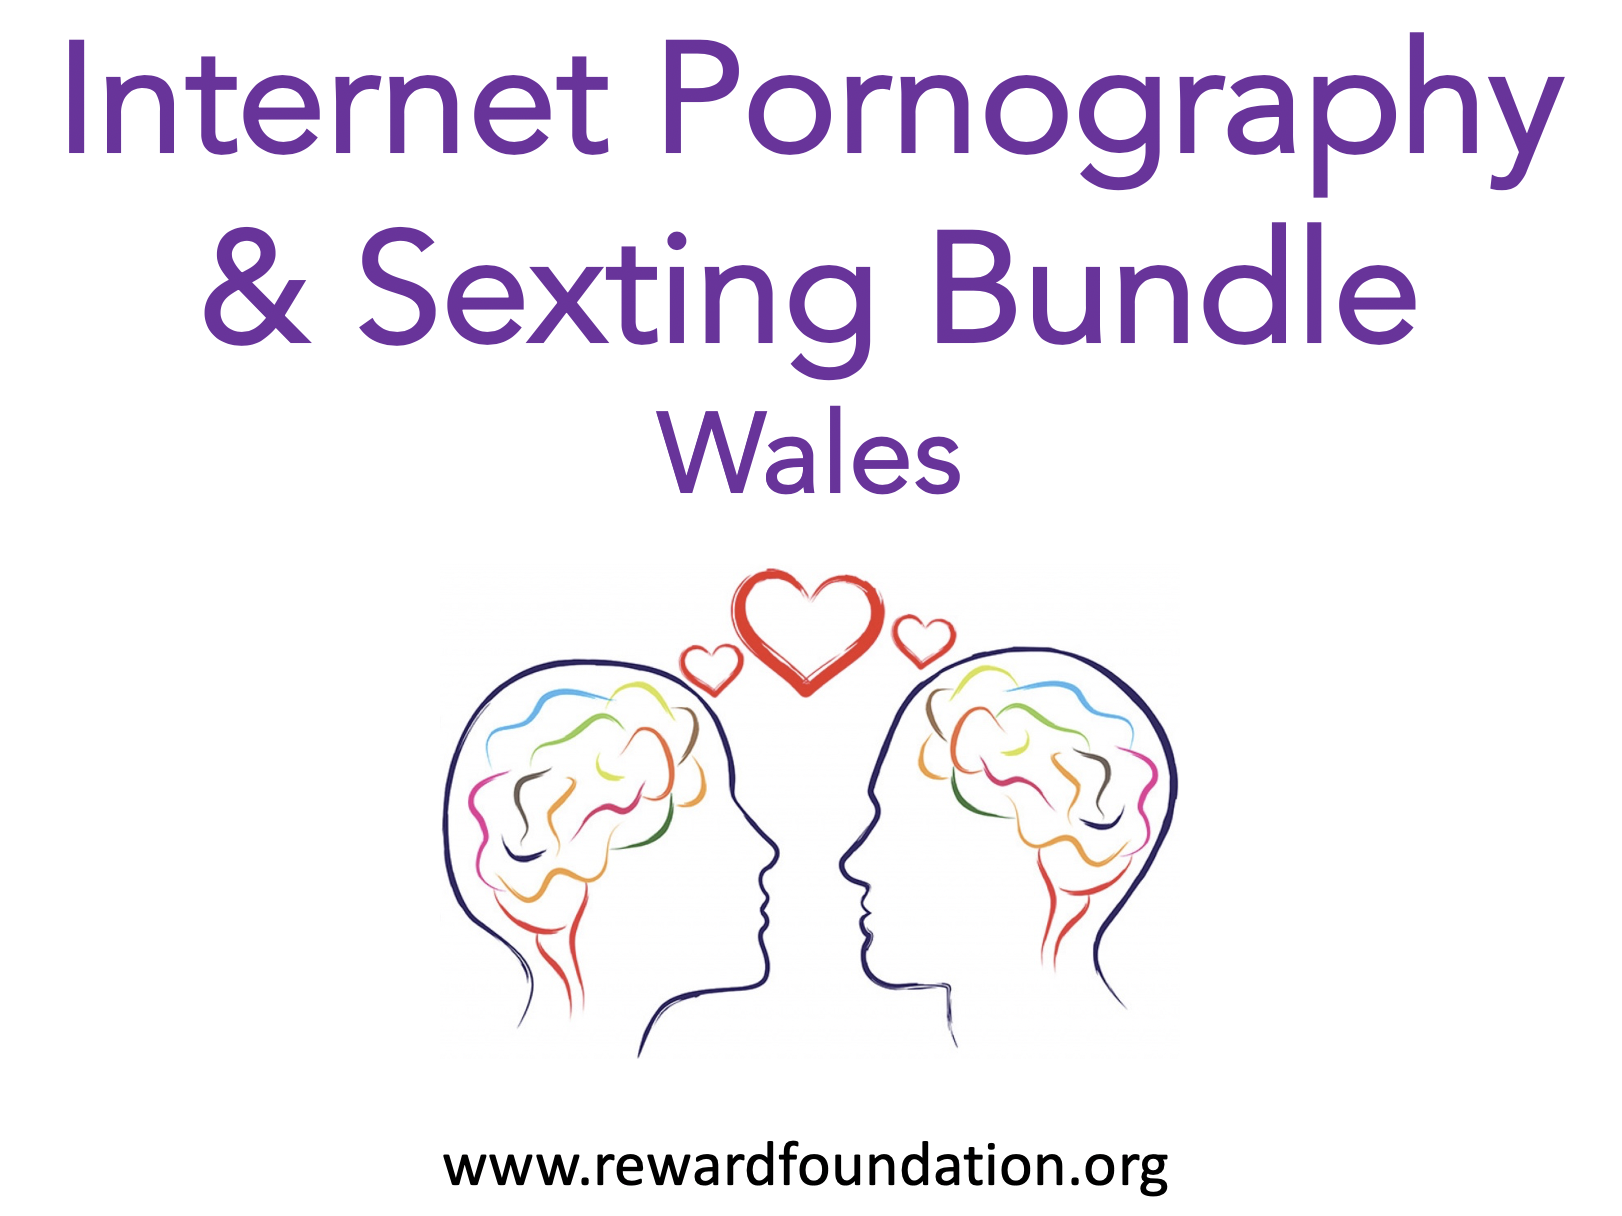 Internet Pornography and Sexting Bundle Wales